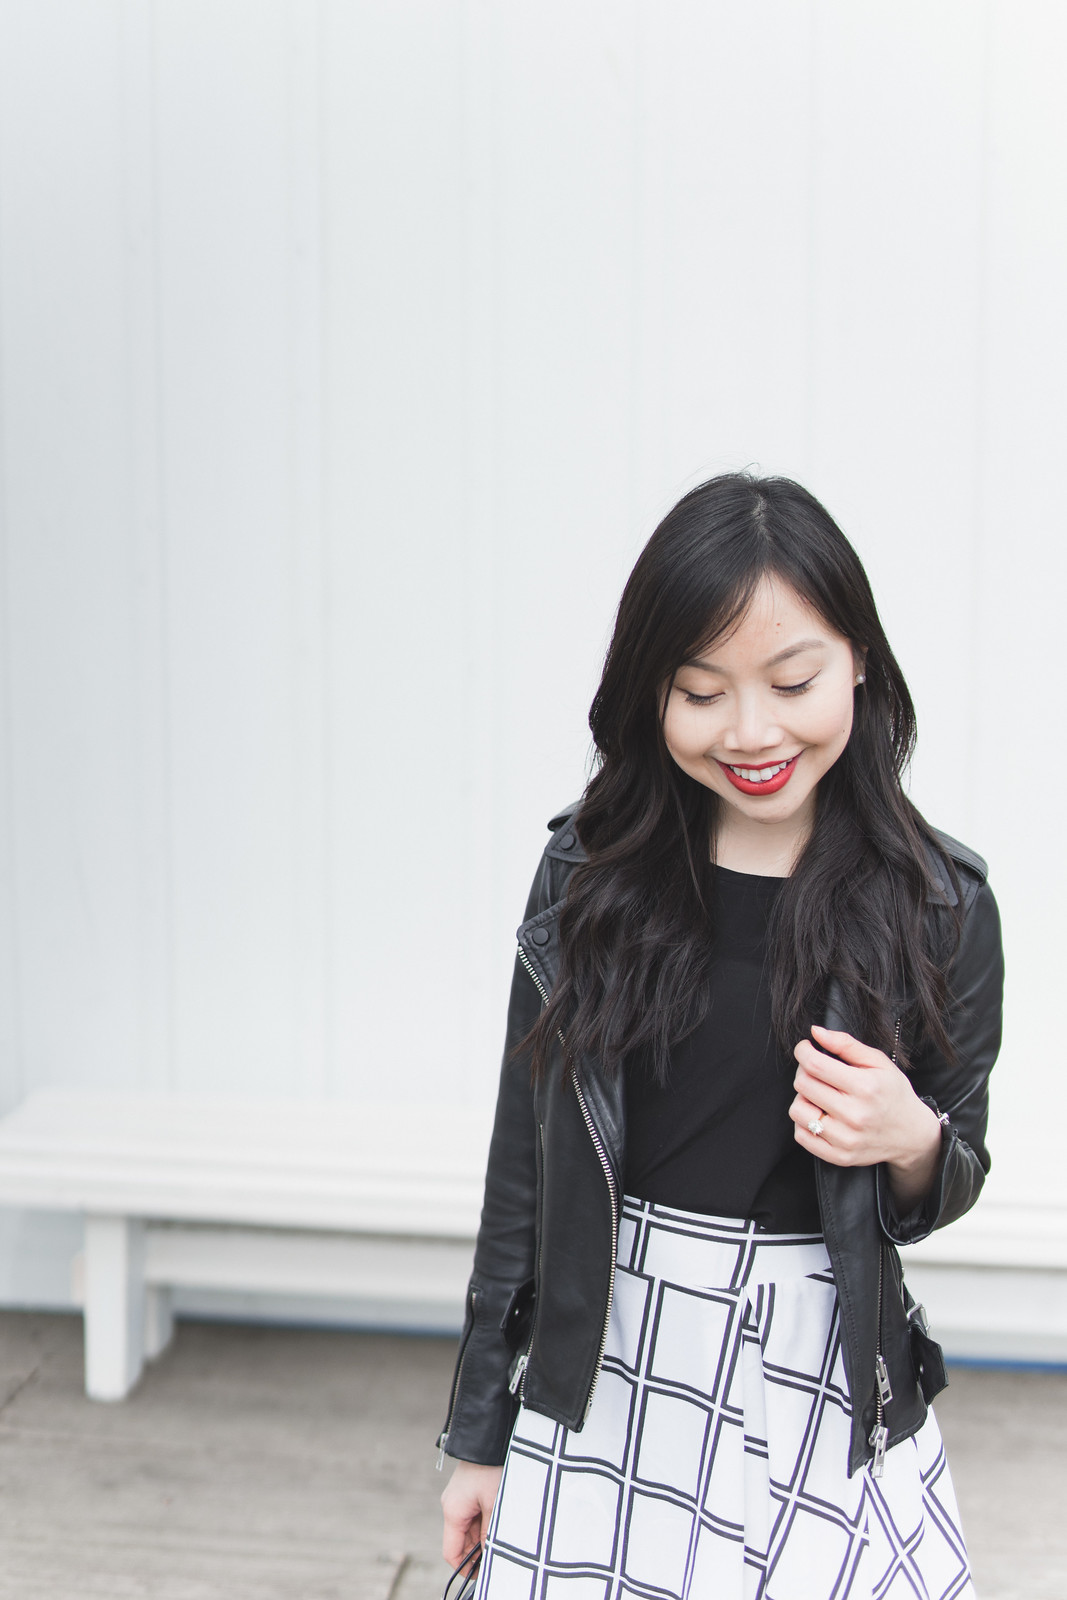 Black and white graphic skirt